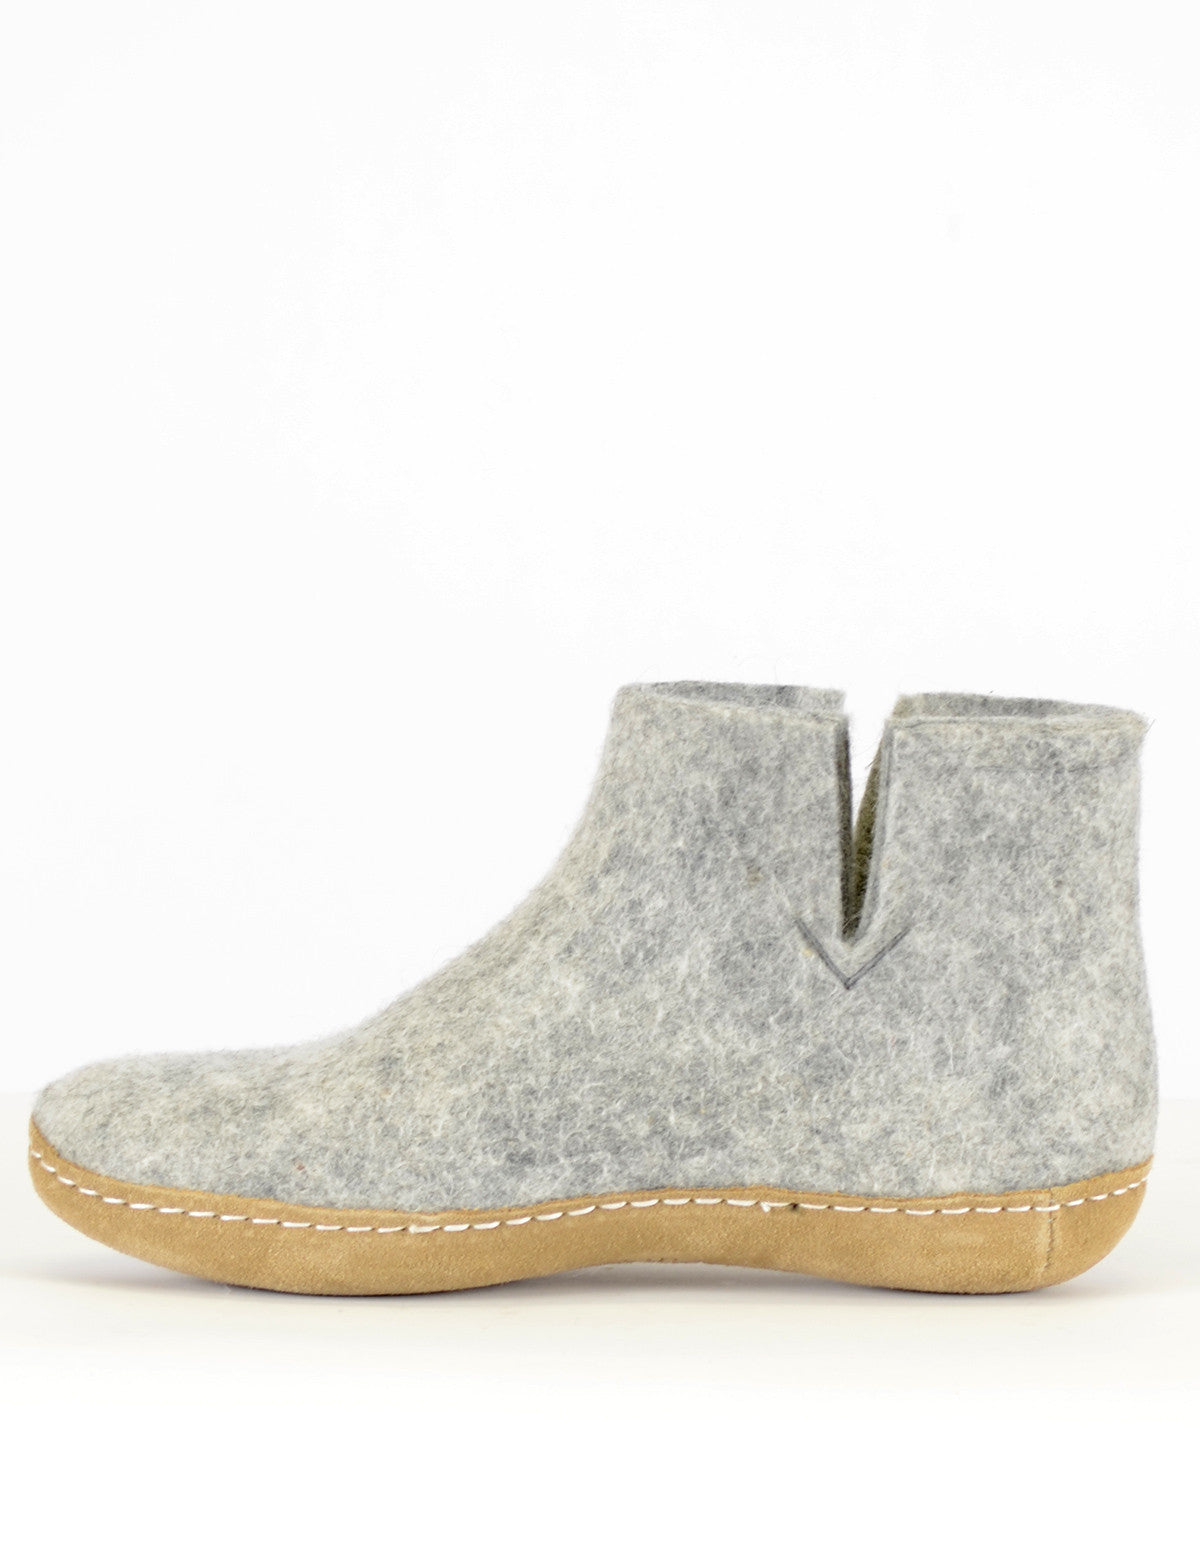 Glerups Women's Wool Boot Leather Sole Grey - Still Life - 2